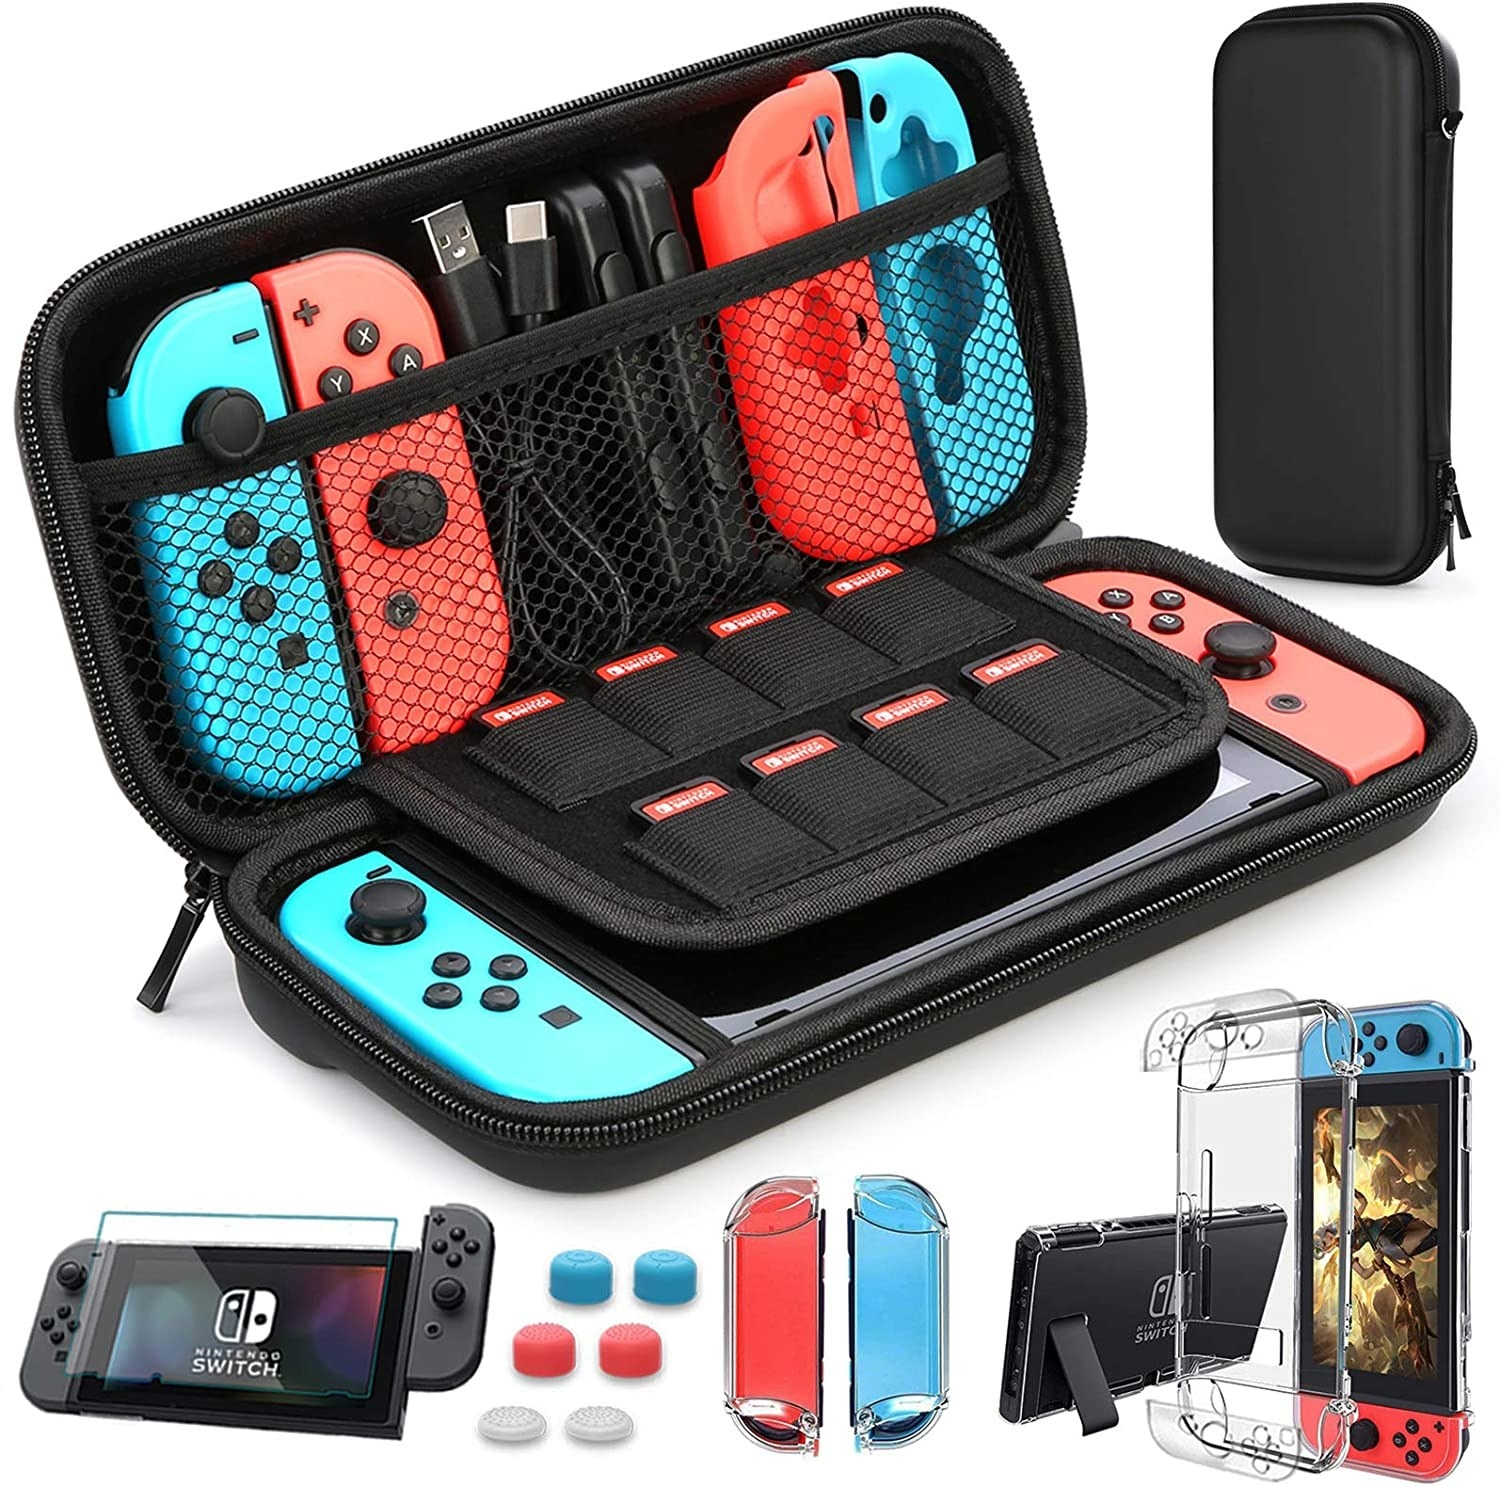 The contents of the bundle laid out with a Switch in the case